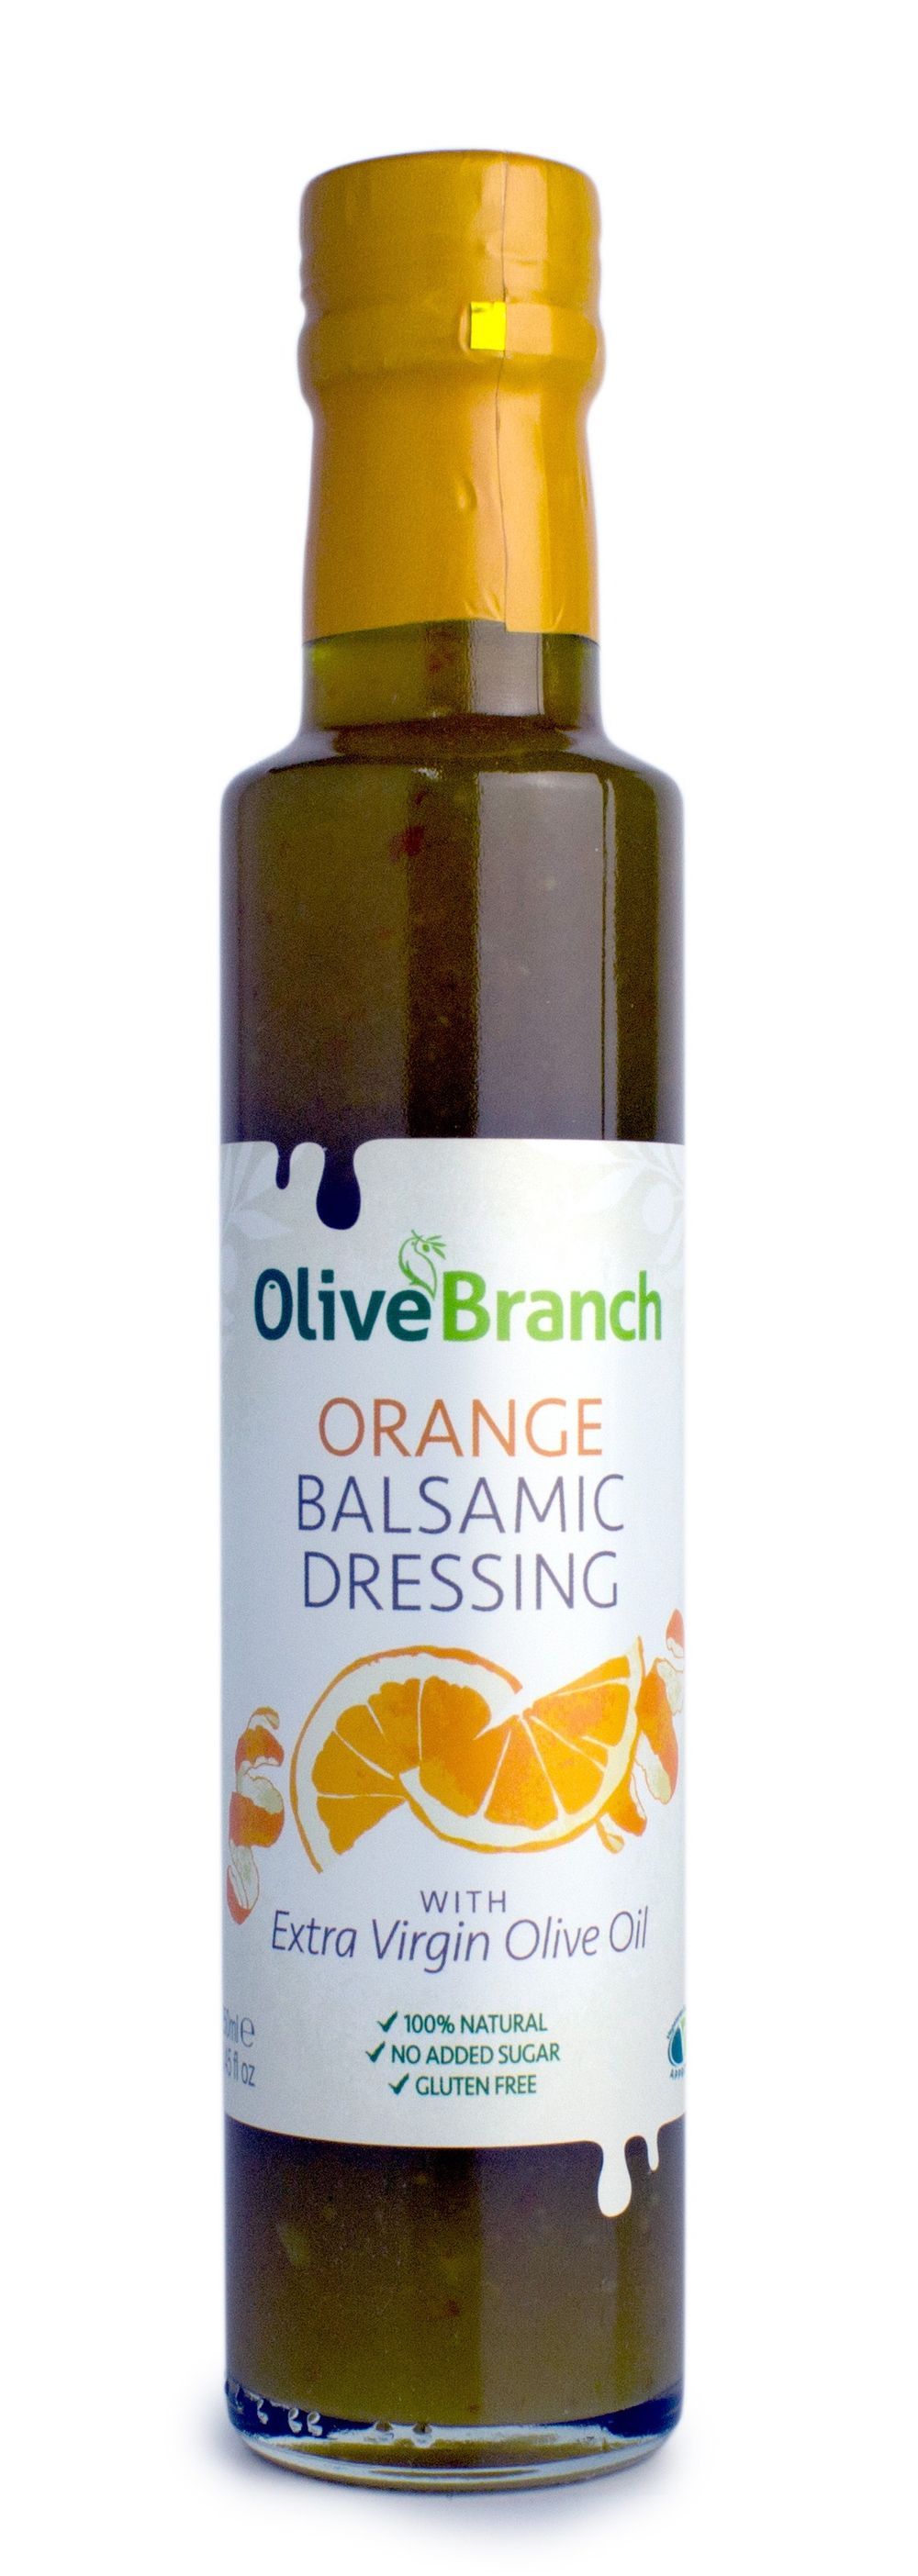 Orange Balsamic Dressing